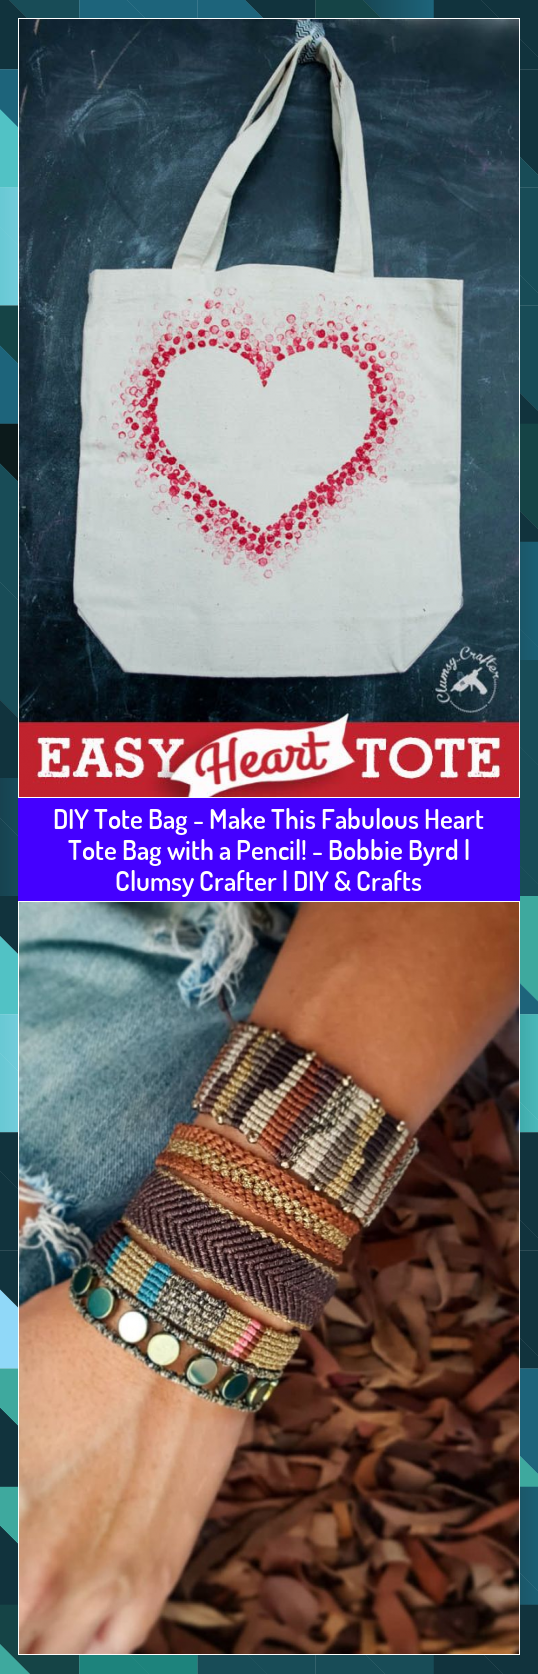 DIY Tote Bag  Make This Fabulous Heart Tote Bag with a Pencil  Bobbie Byrd  Clumsy Crafter  DIY  Crafts